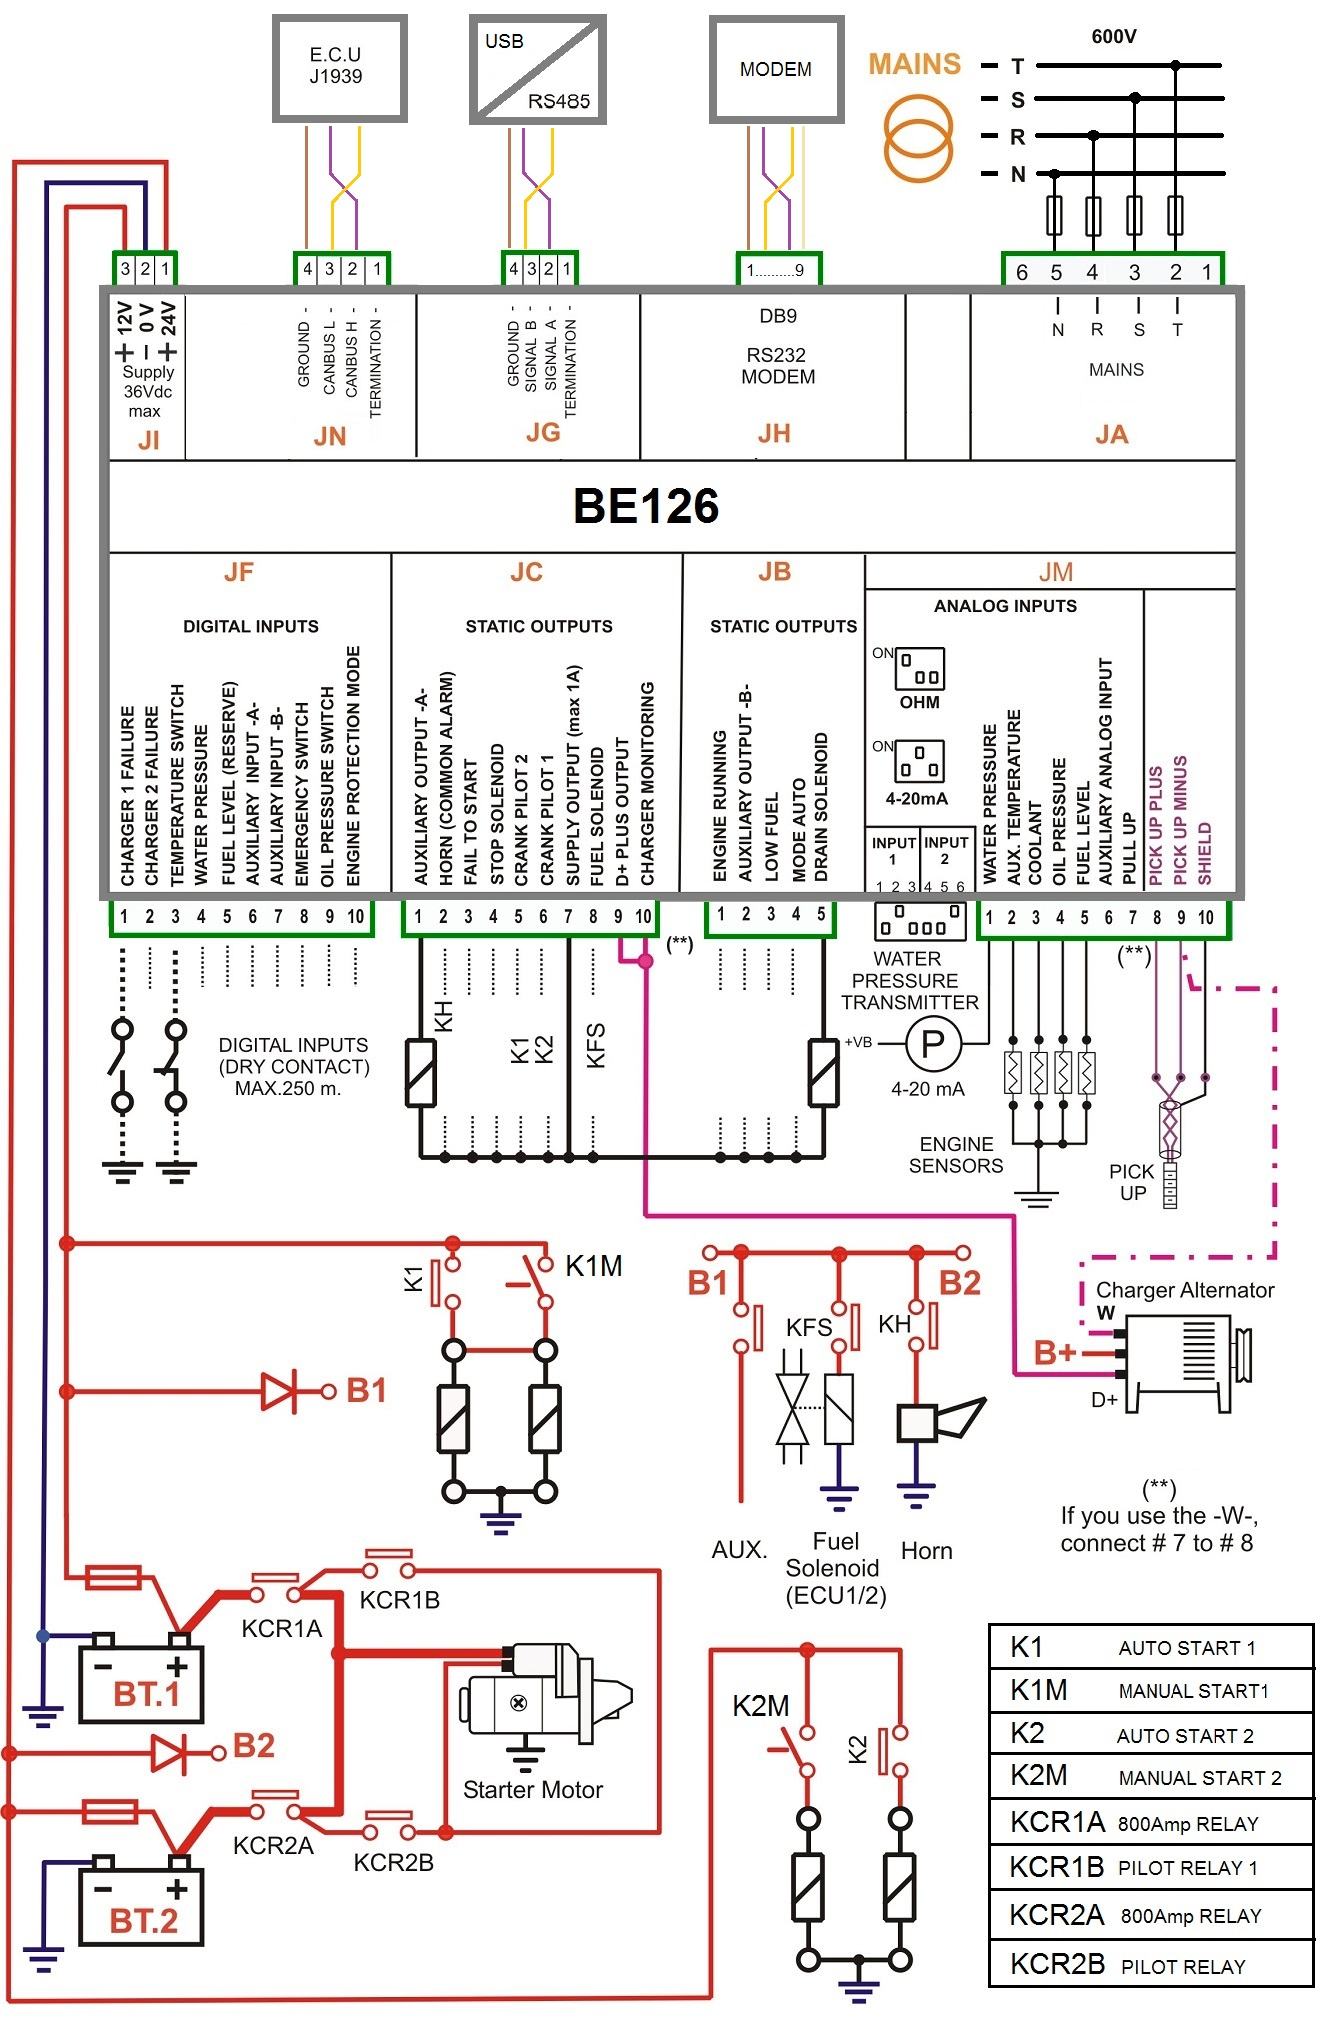 diesel fire pump diagram anything wiring diagrams u2022 rh flowhq co Fuel Filter Diagram Fuel Filter Diagram